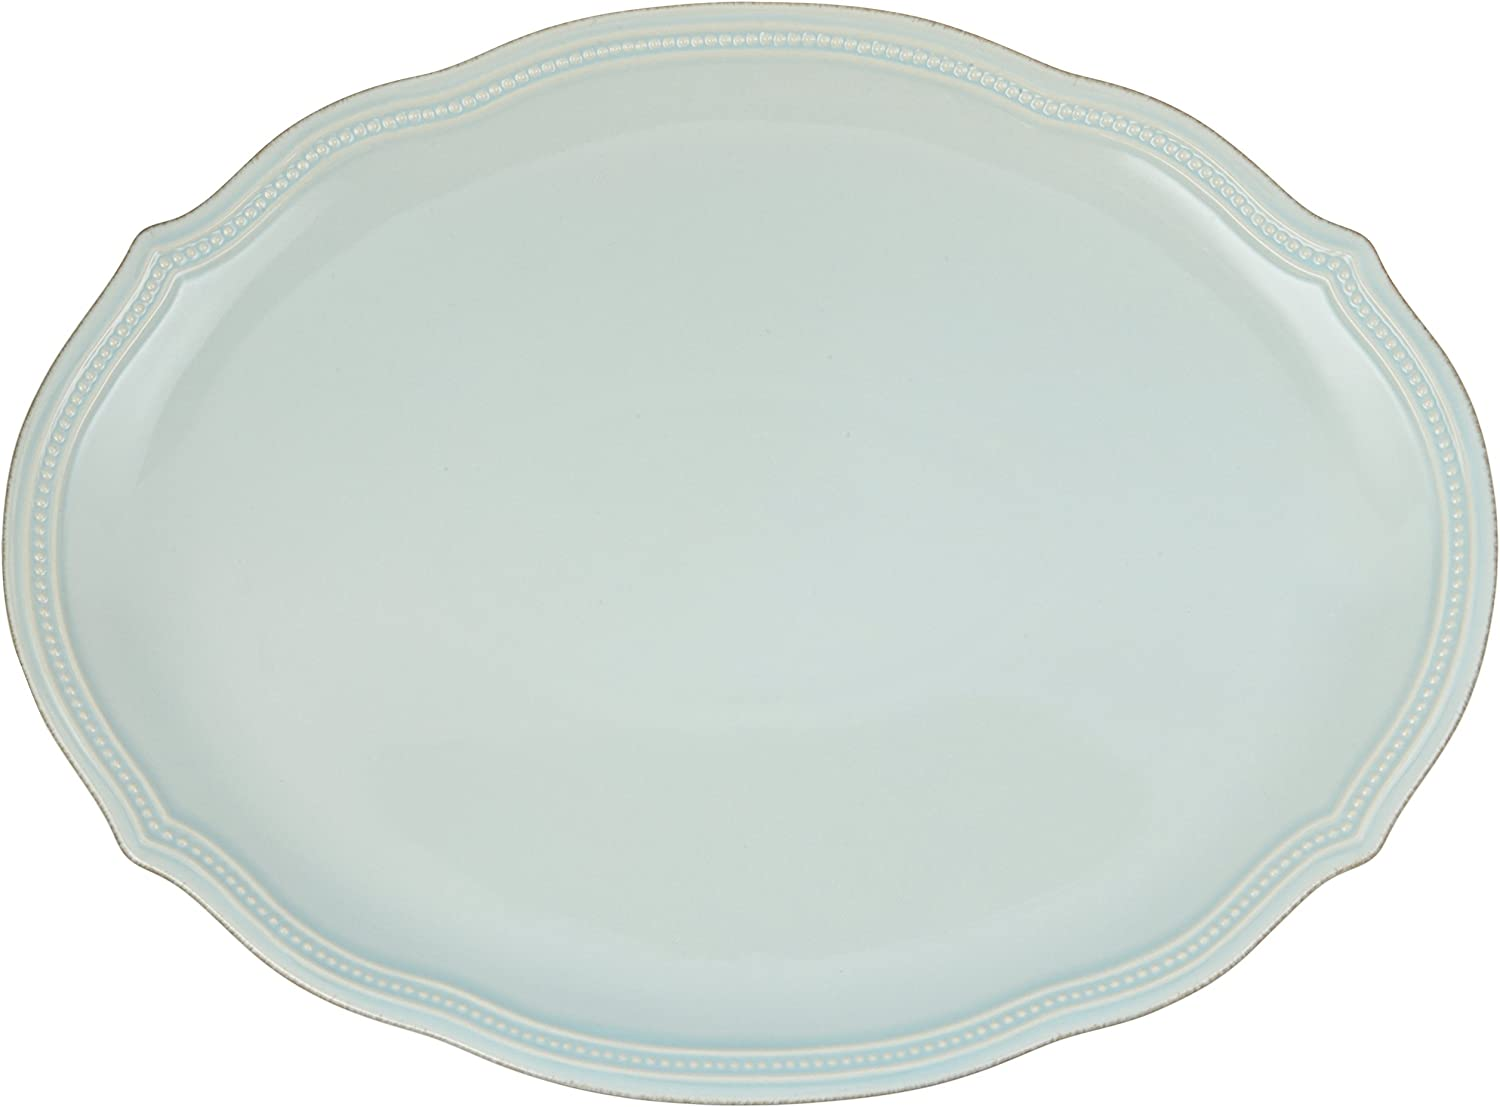 Lenox French Perle Bead Oval Platter, Ice bluee